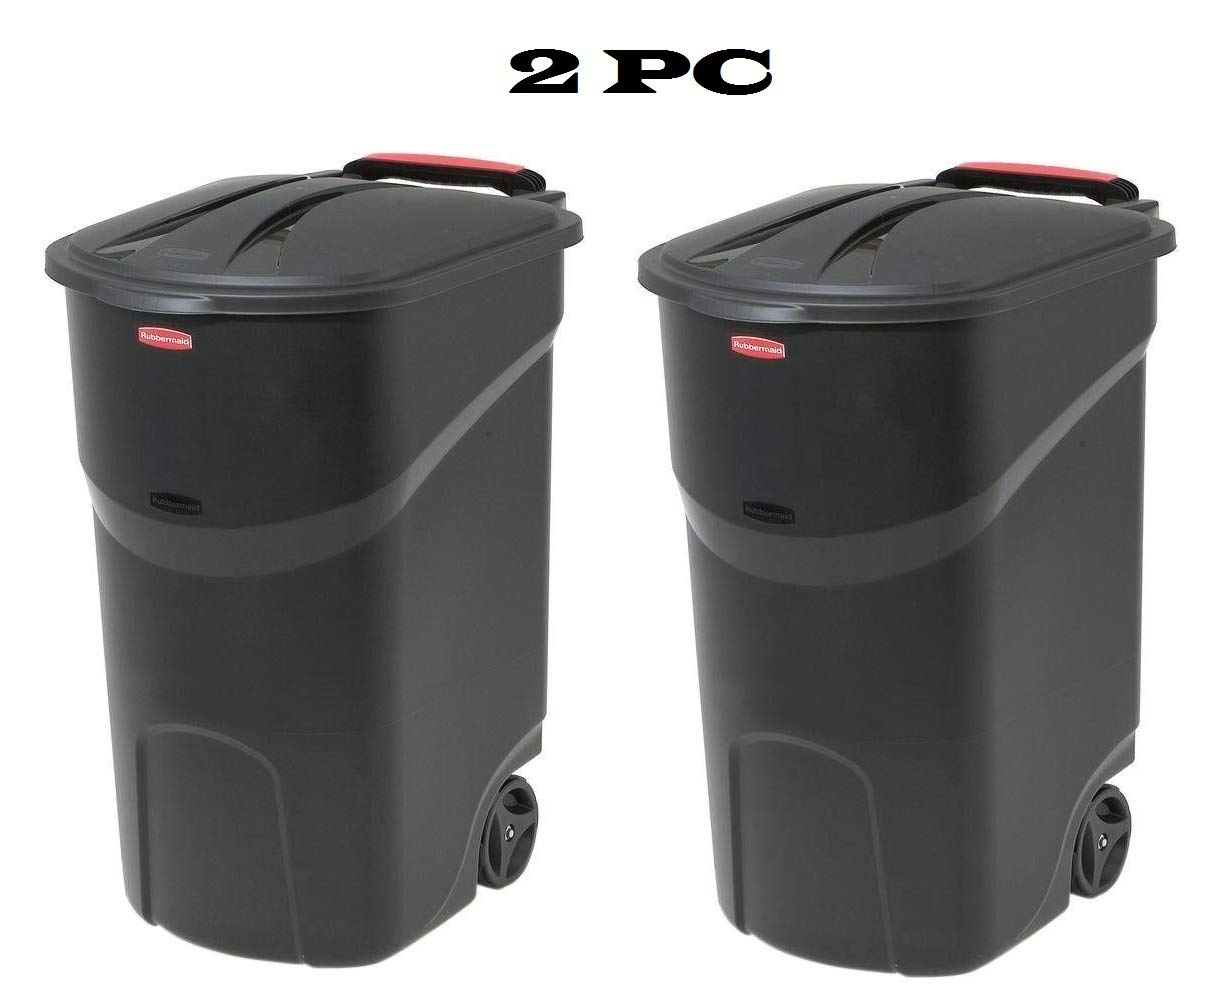 Home & Comforts 2 pc 45 Gallon Wheeled Trash can Garbage Container Outdoor Plastic Waste bin Basket Black - Trash can with lid - Kitchen Trash can - Outdoor Trash can for Patio Camping Trash can.